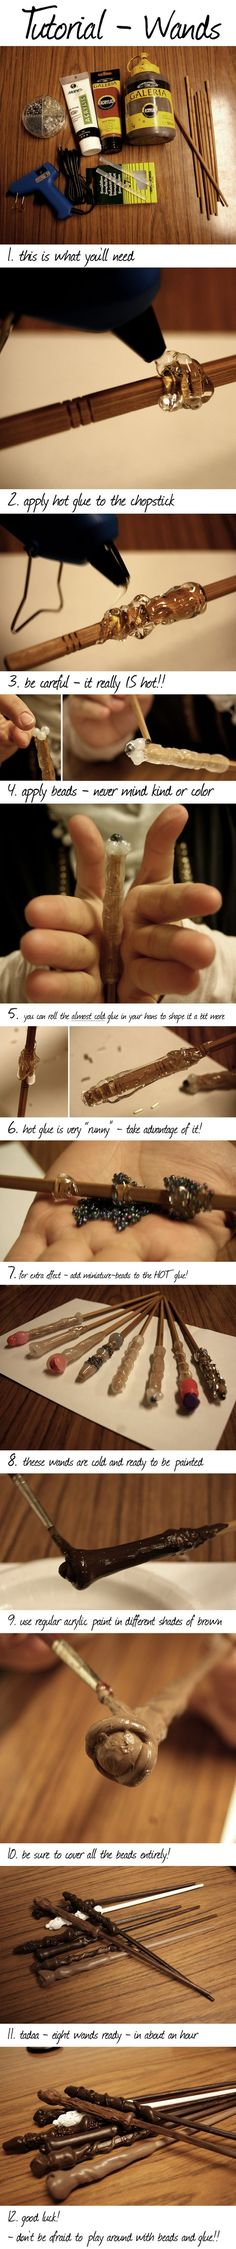 How to make magic wands, 25 things to do with cardboard boxes, and make a mini bow and arrow set!